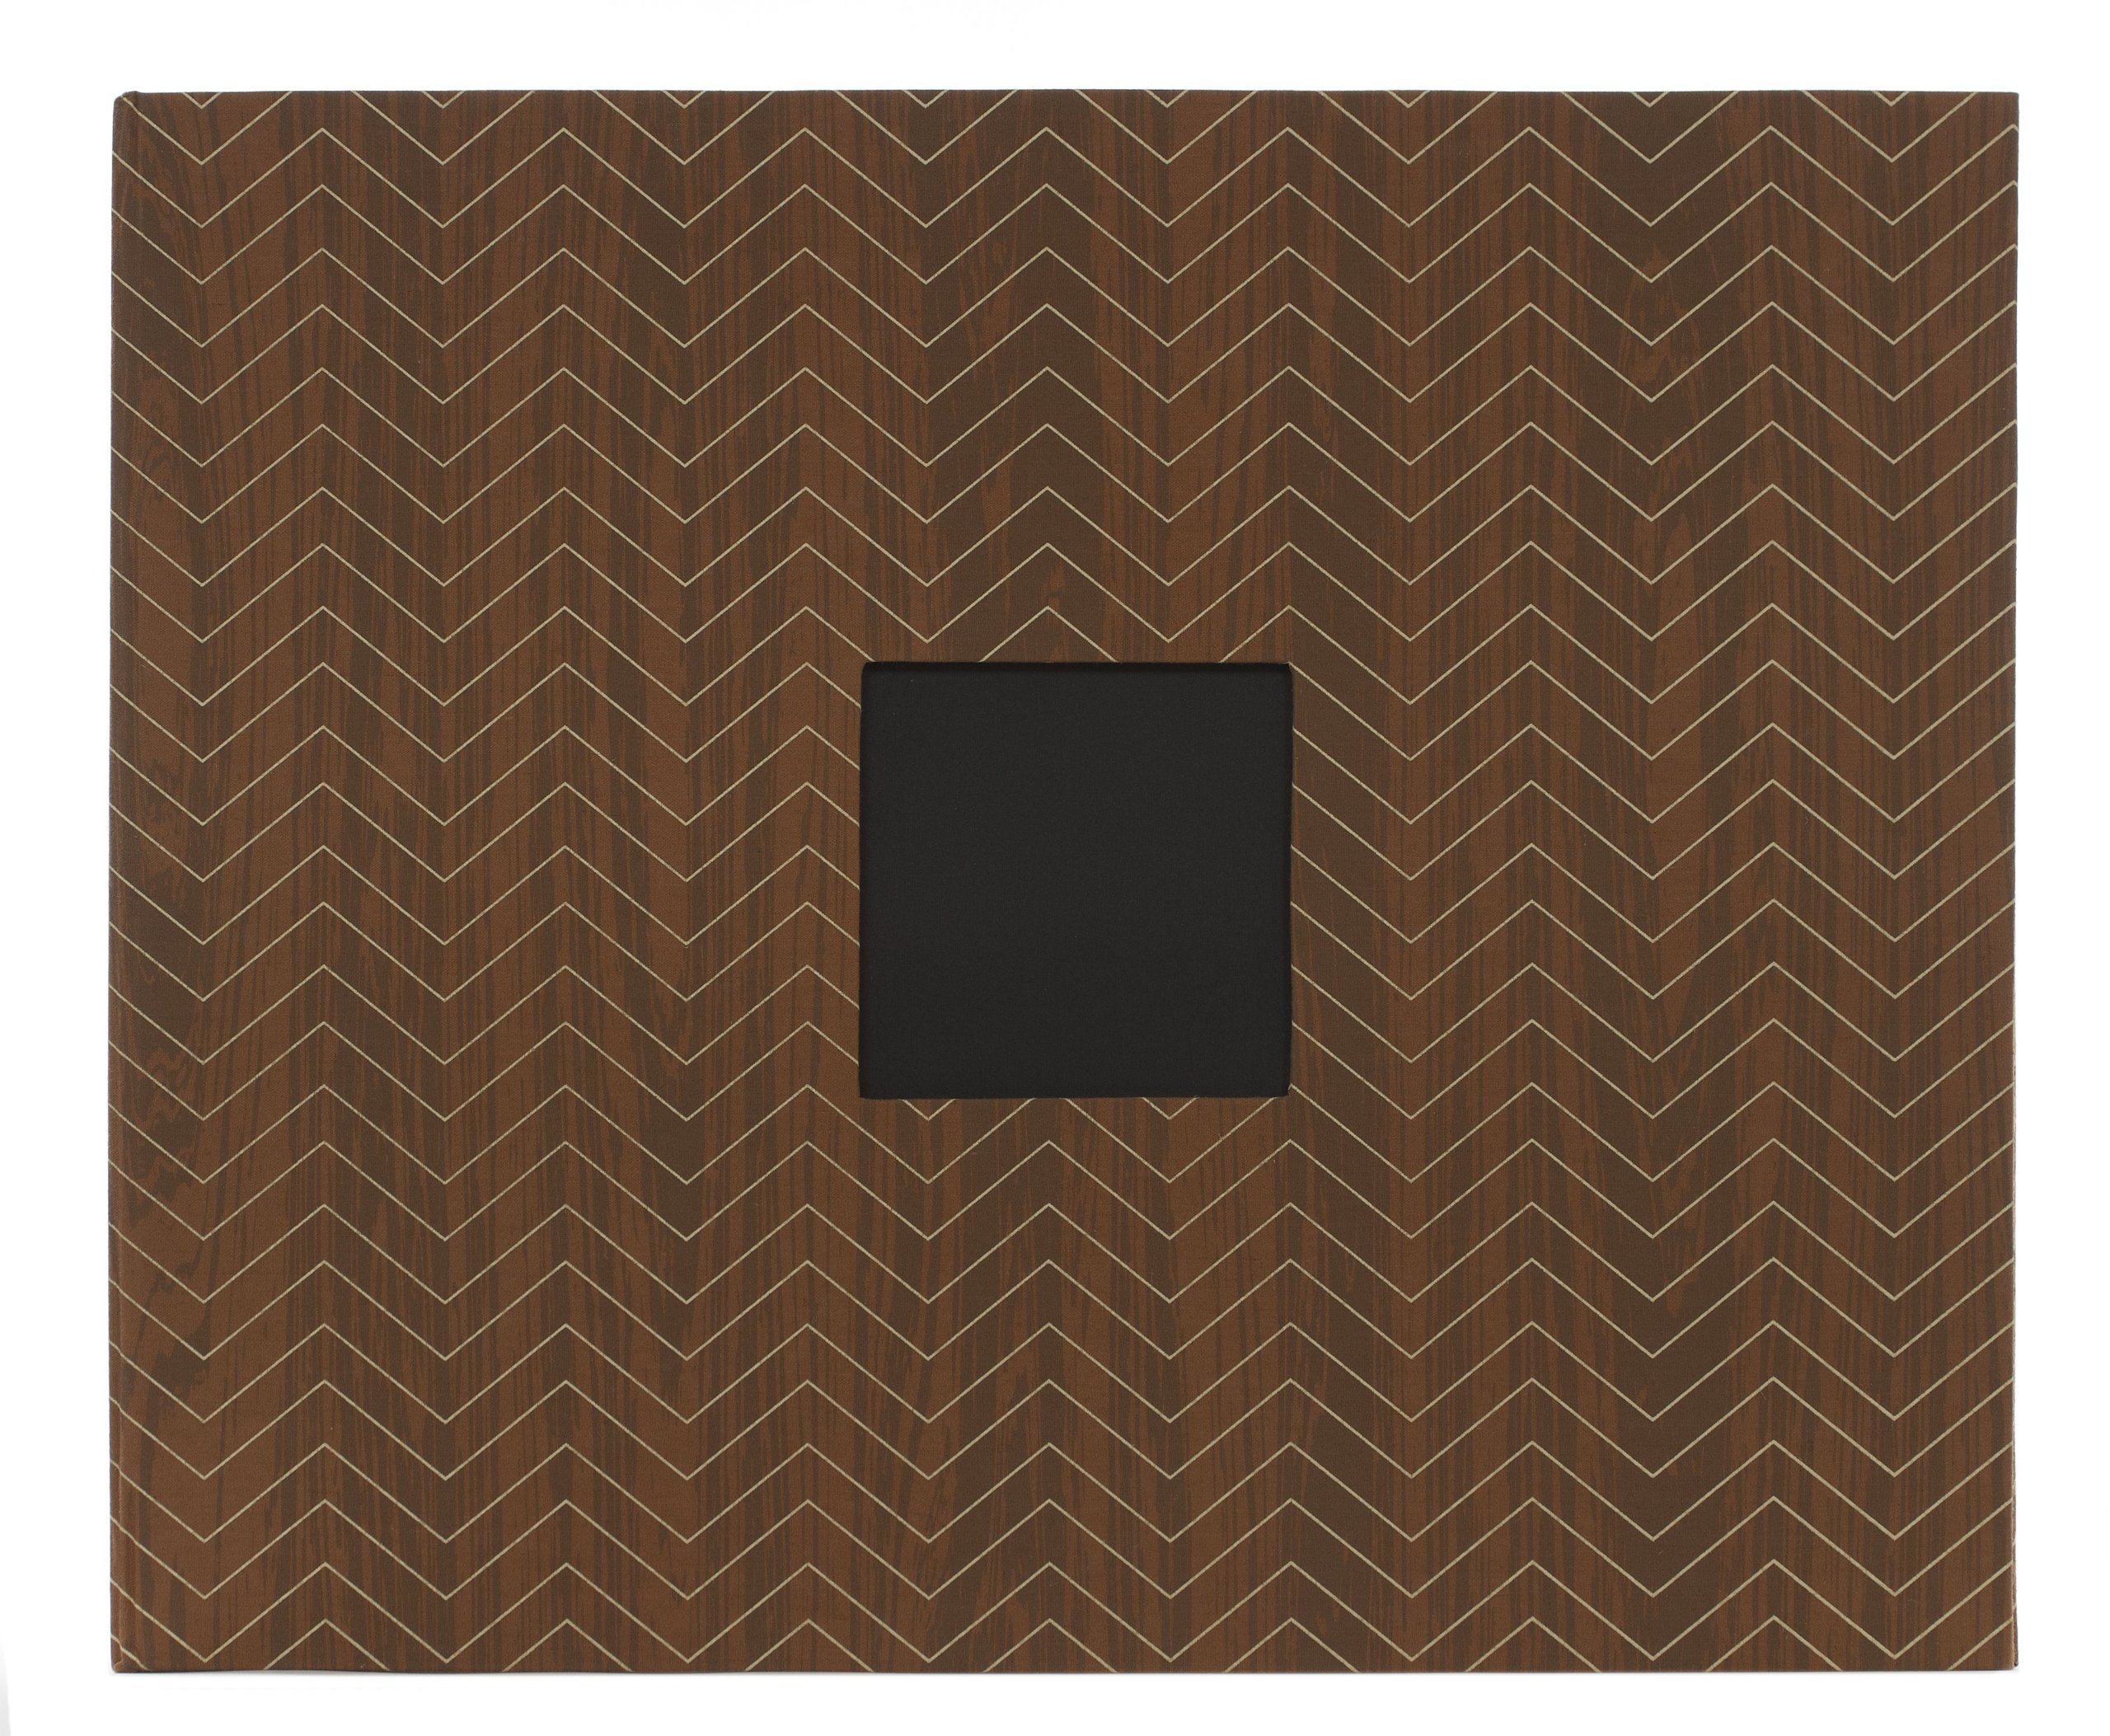 American Crafts Oilcloth D-Ring Scrapbooking Album, Woodgrain Chevron 2, 12 by 12-Inch by American Crafts